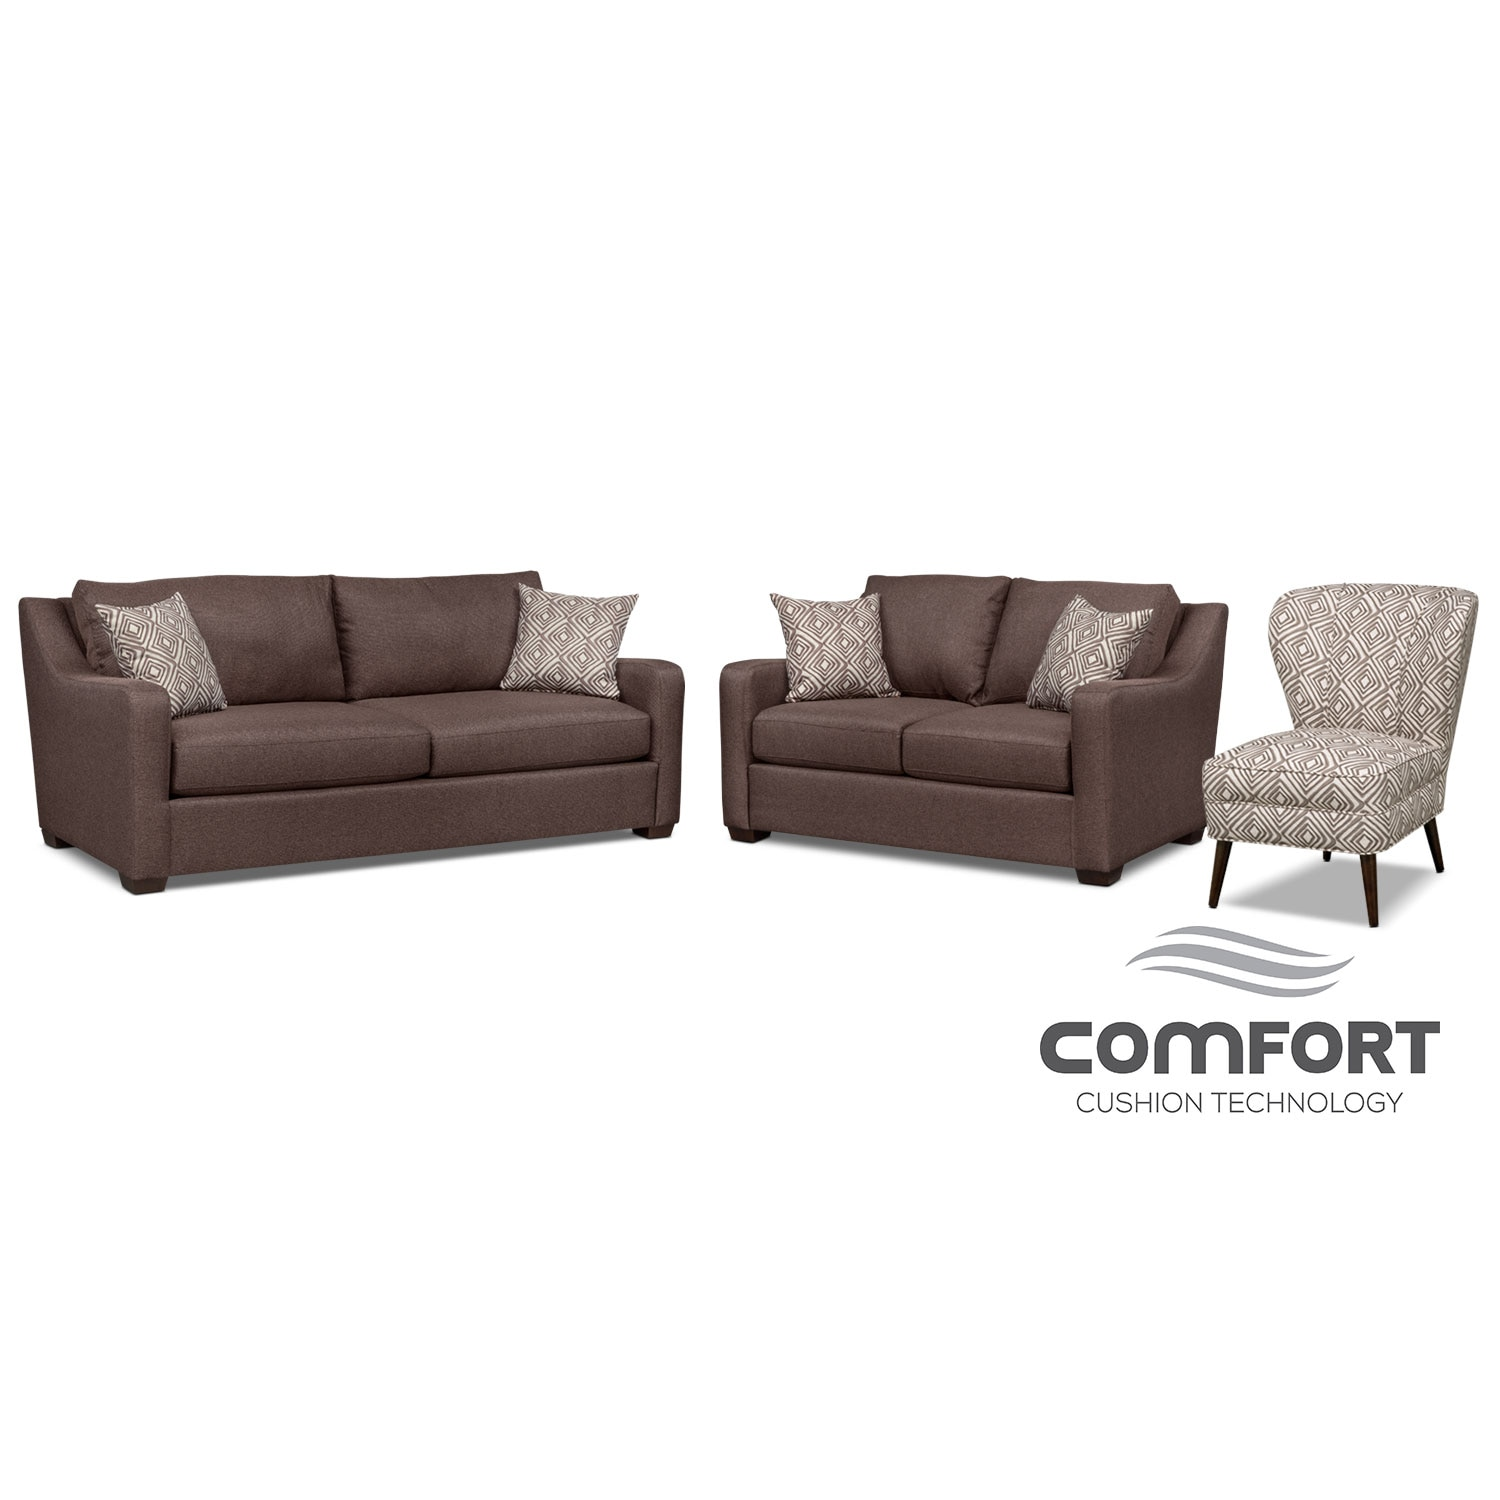 Living Room Furniture - Jules Comfort Sofa, Loveseat and Accent Chair Set - Brown